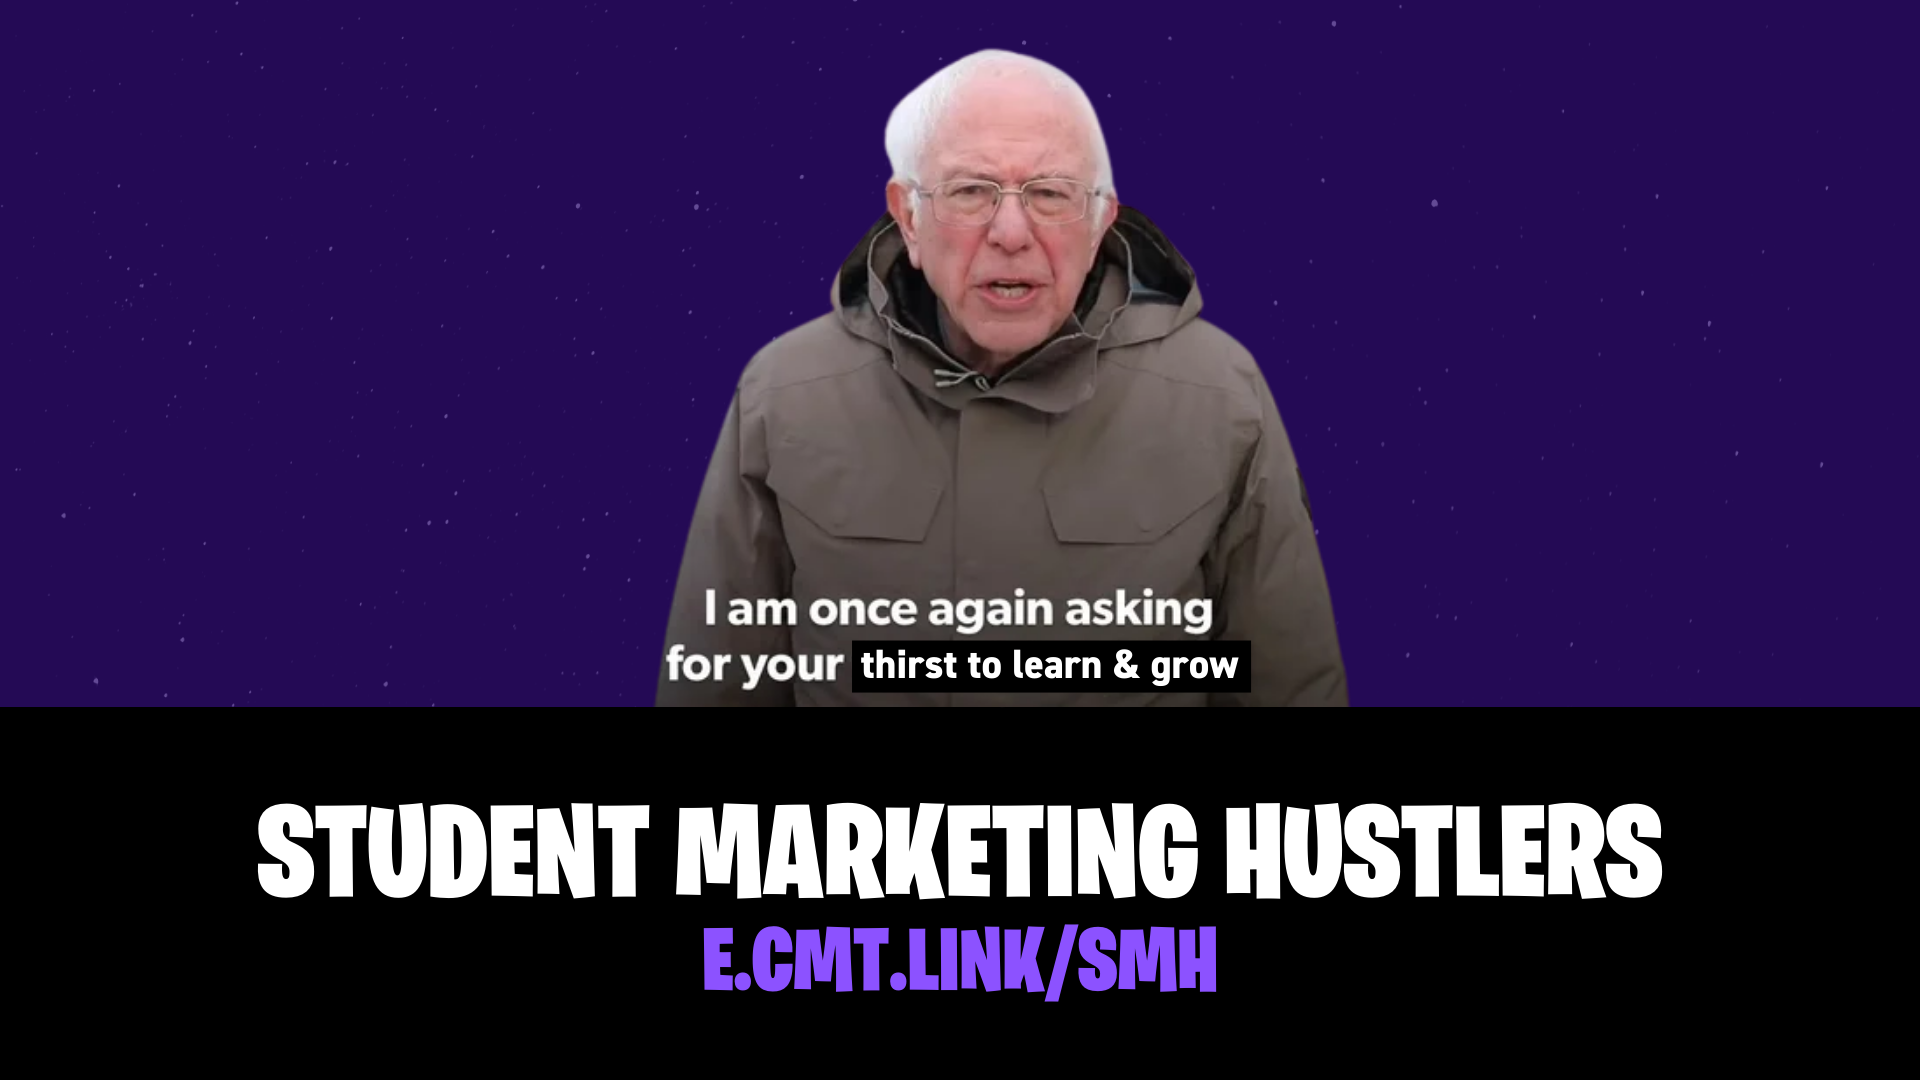 Creating A Community For Student Marketing Hustlers